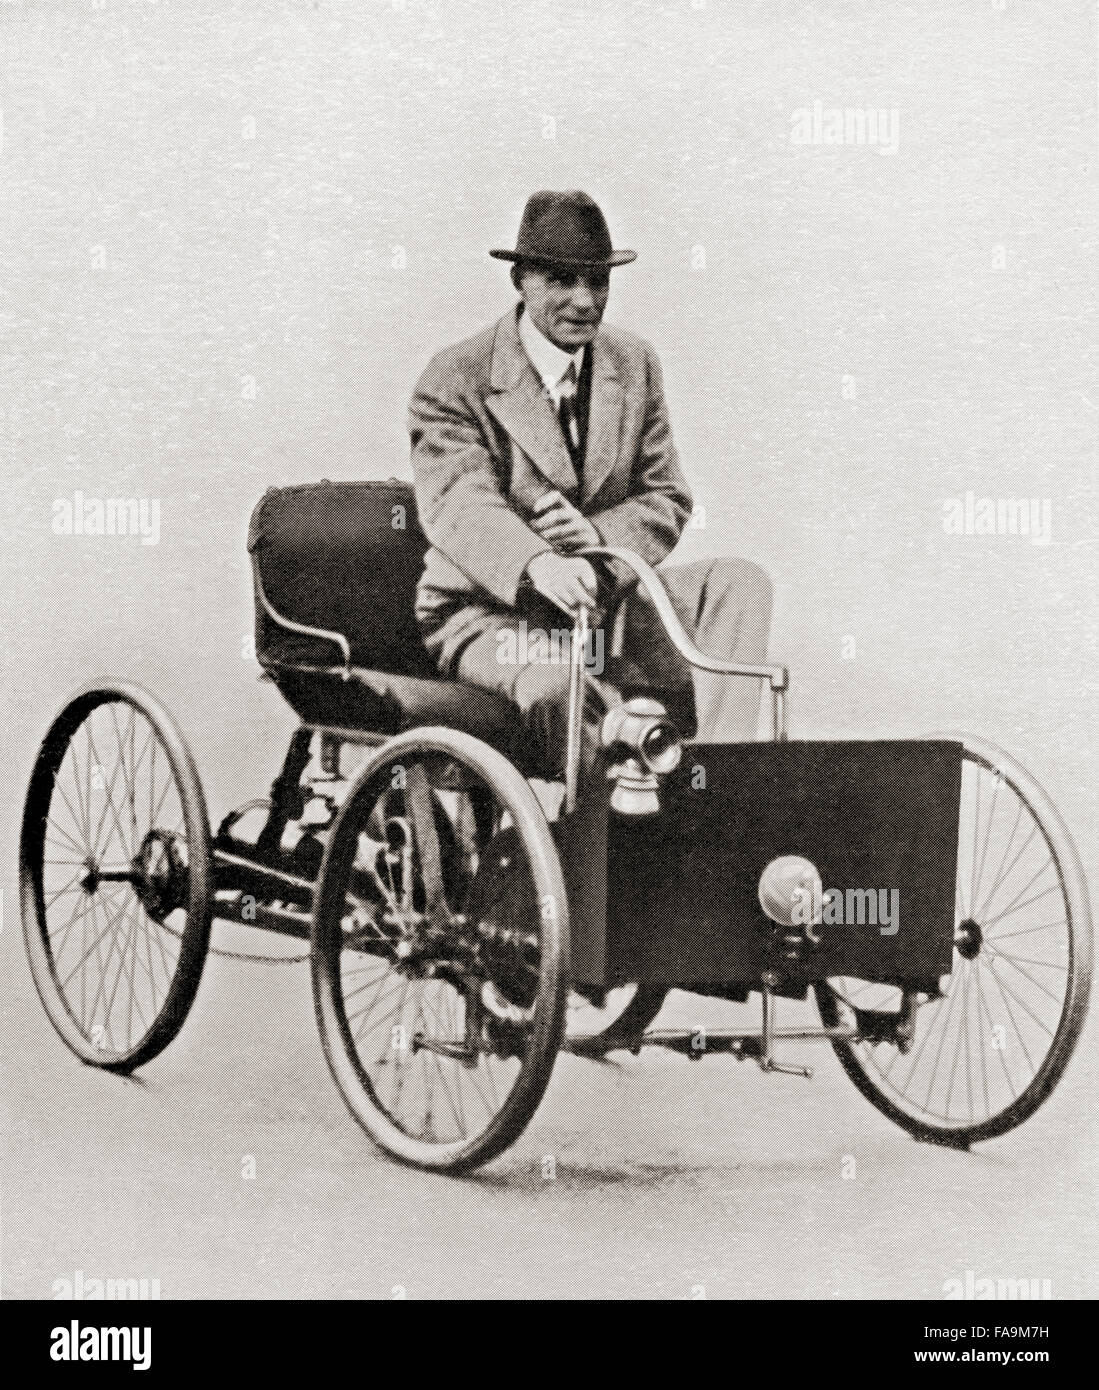 Henry Ford 1863 u2013 1947. American industrialist founder of the Ford Motor Company seen here in the first Ford car the Ford Quadricycle built in 1896. & Henry Ford 1863 u2013 1947. American industrialist founder of the ... markmcfarlin.com